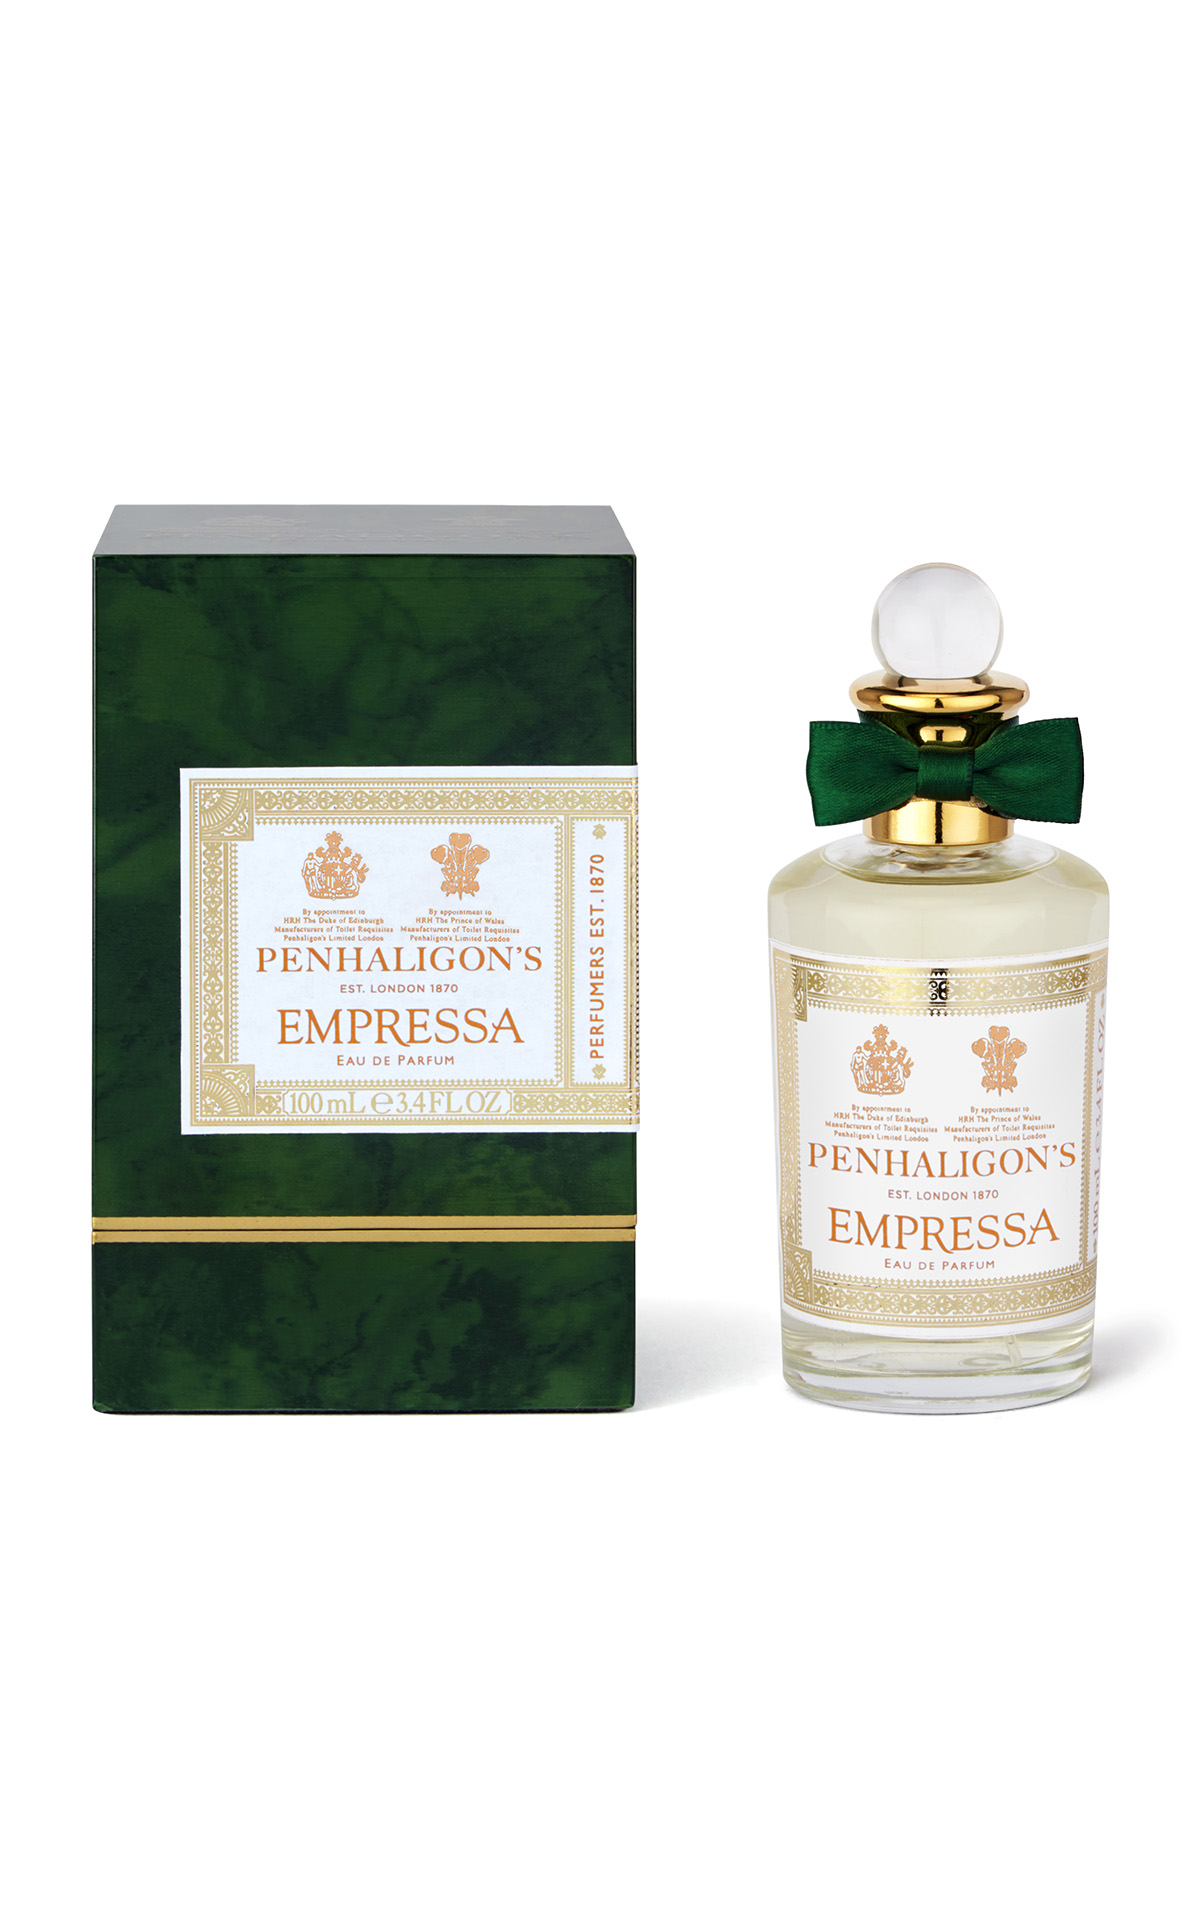 Penhaligon's Empressa 100ml eau de parfum from Bicester Village